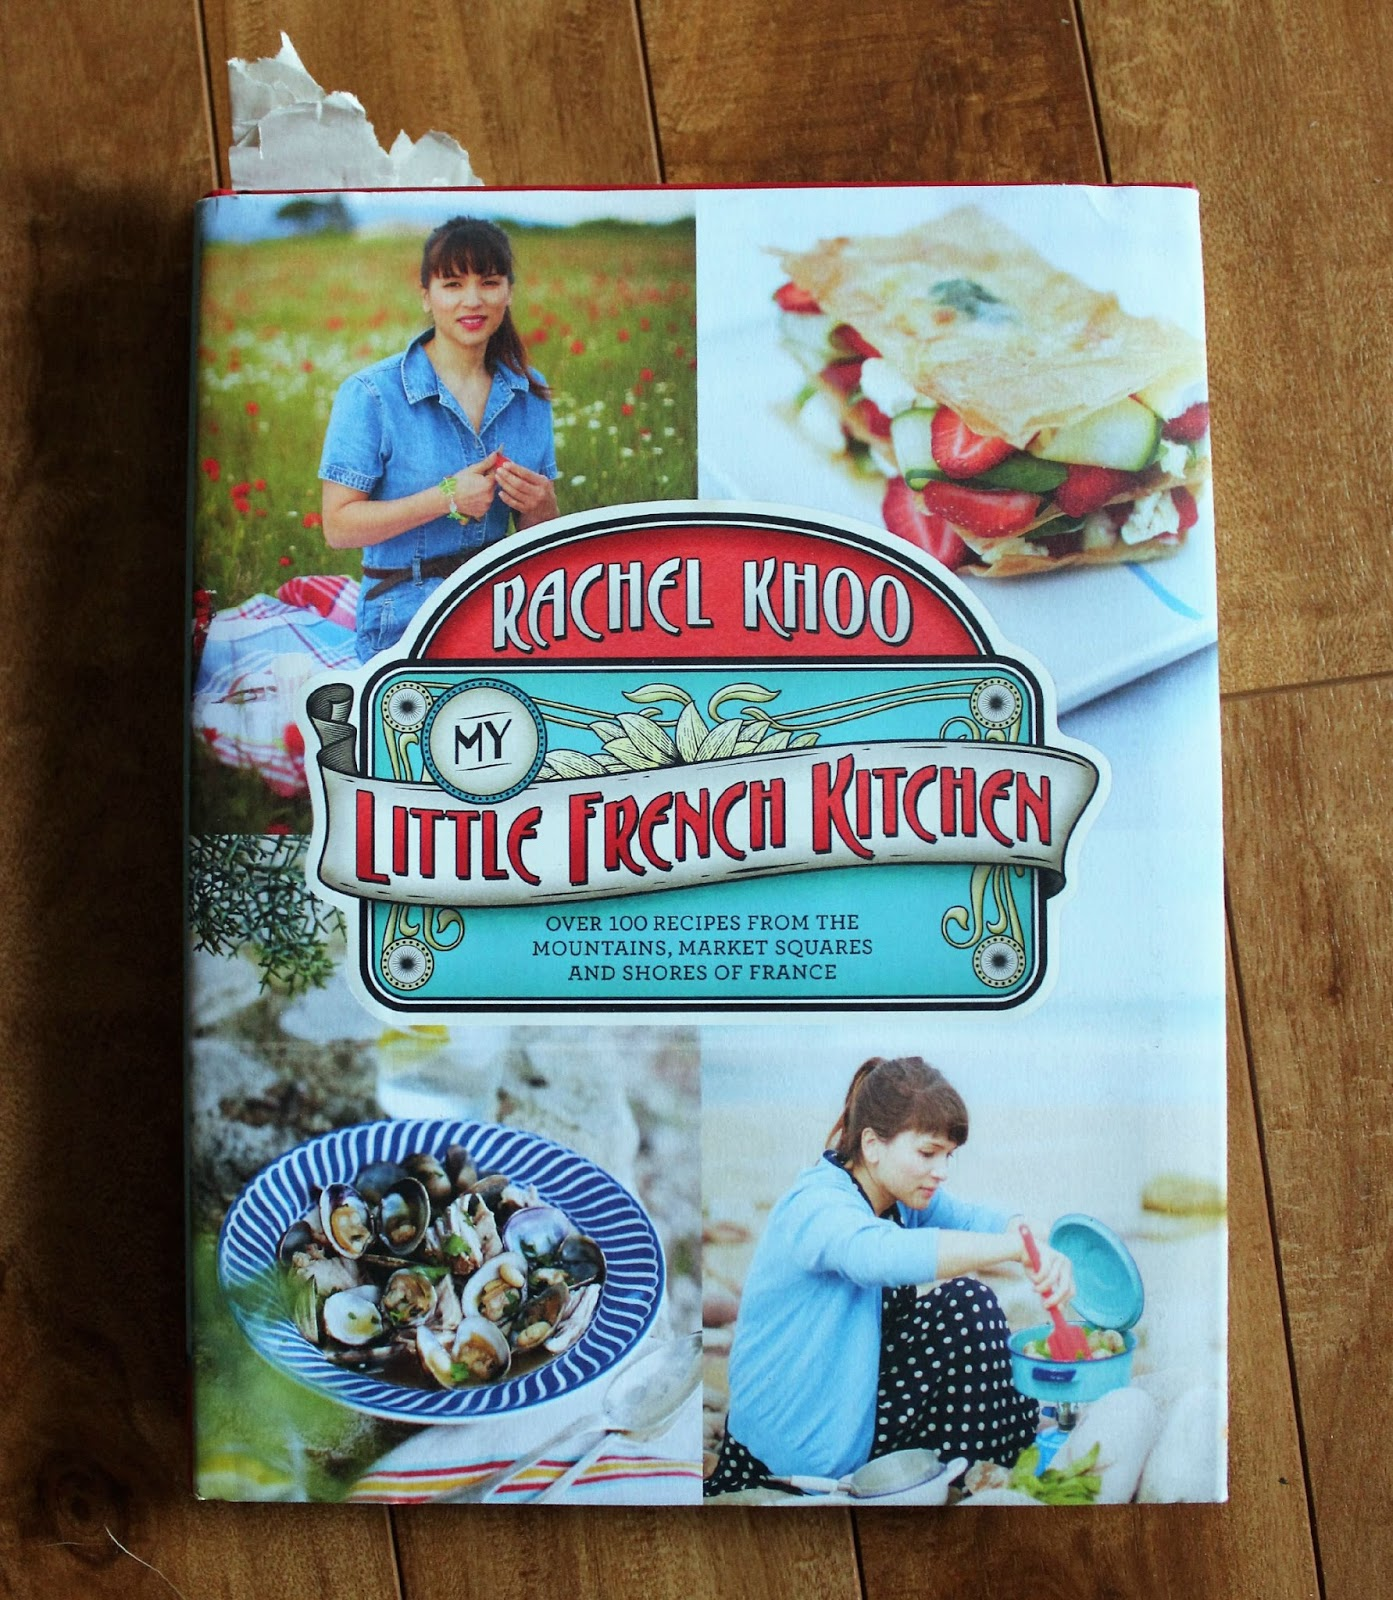 My Little French Kitchen By Rachel Khoo